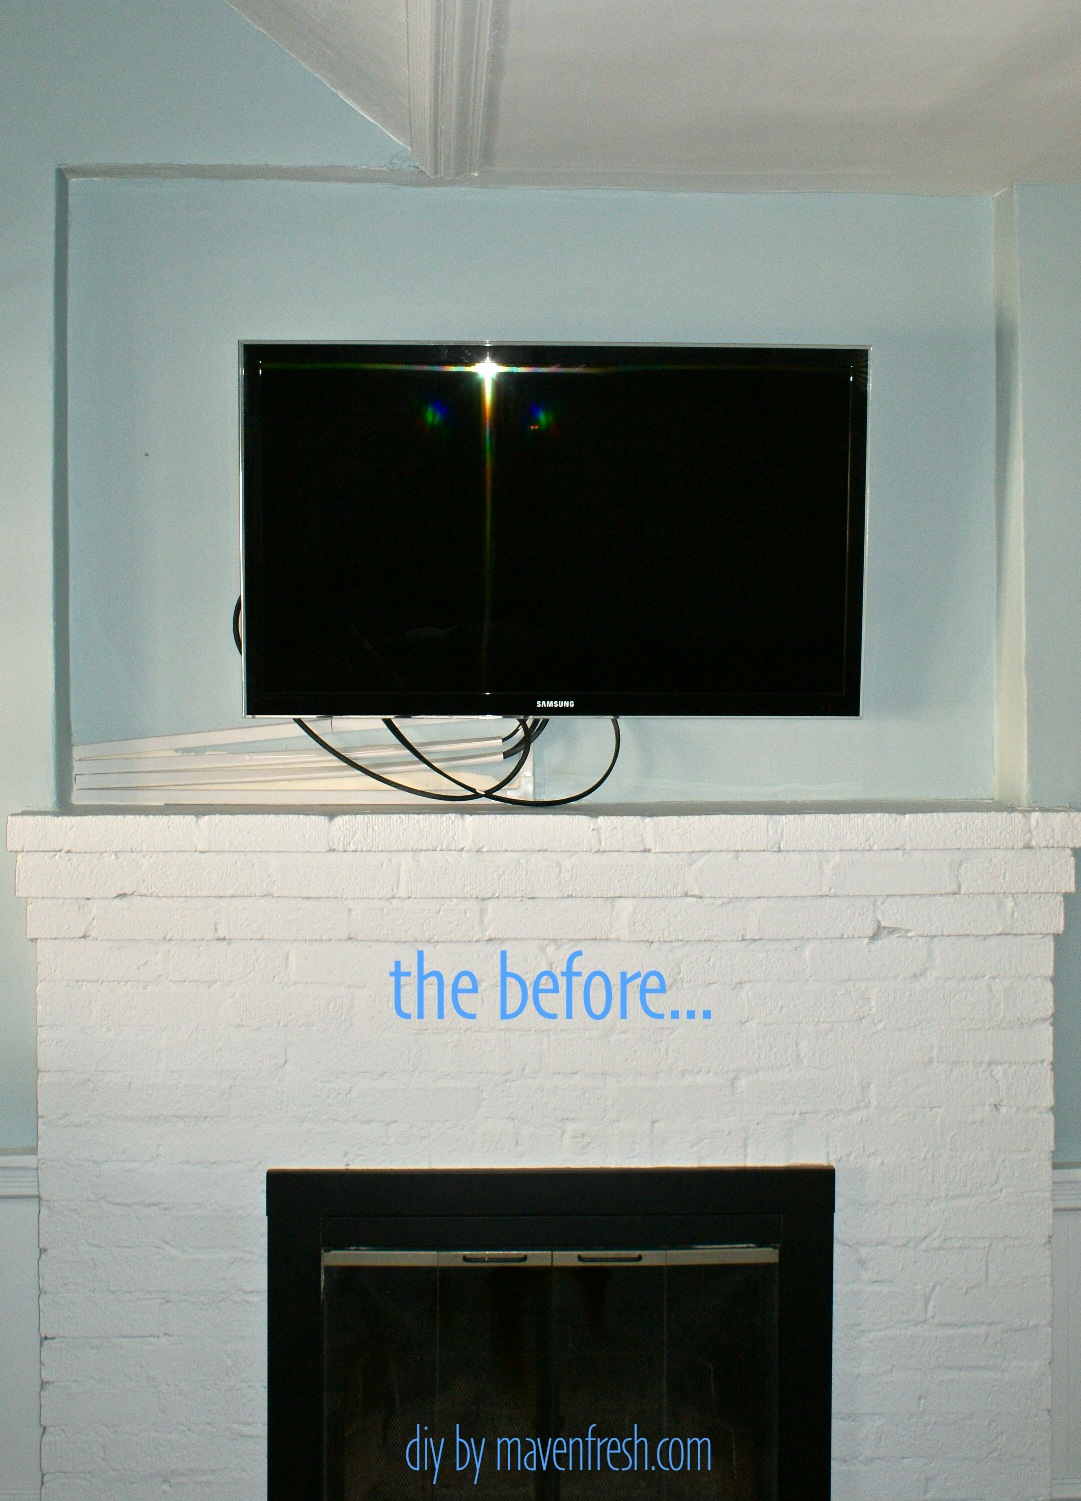 Old Fashioned Tv Over Fireplace Hide Wires Gift - Wiring Diagram ...